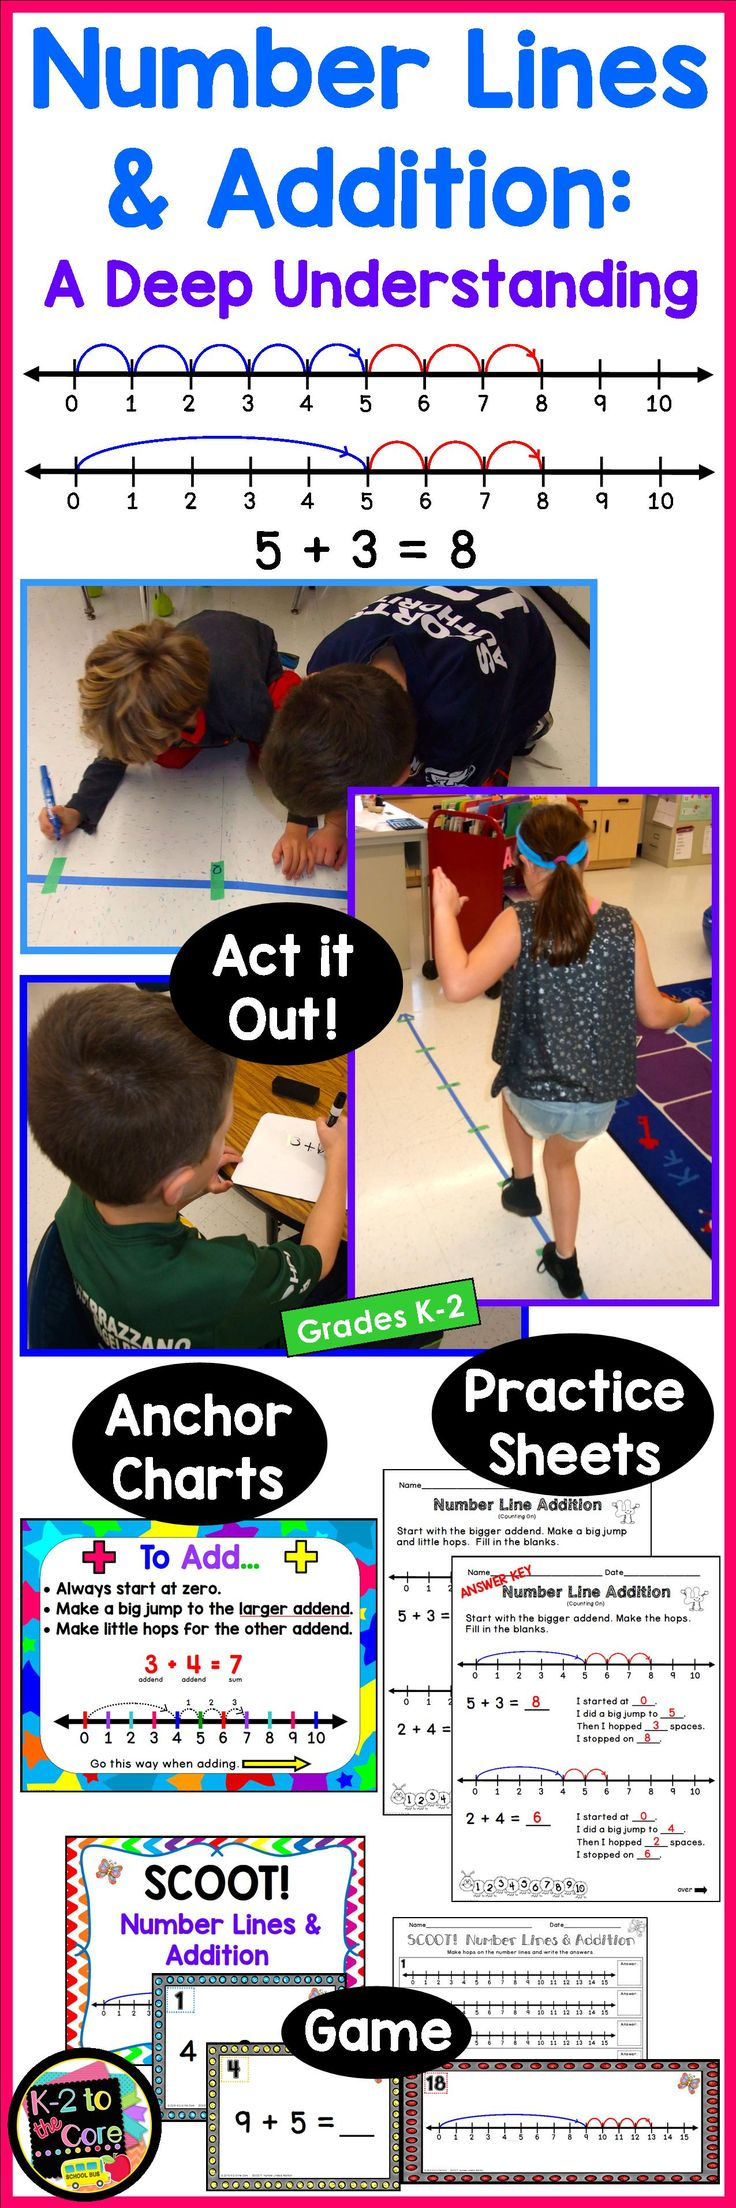 Do you want to deepen your students' understanding of addition? Give this resource a try! Number Lines|Addition|Math|Visual|Introduction|Review|Differentiated Exercises|Build a Number Line|Act Out Moving on Number Lines|Written Practice|Addition Strategies|Count Both Numbers|Counting-On|Anchor Charts|Math Games|Addition Games|Kindergarten Math|First Grade Math|Second Grade Math|1st Grade Math|2nd Grade Math